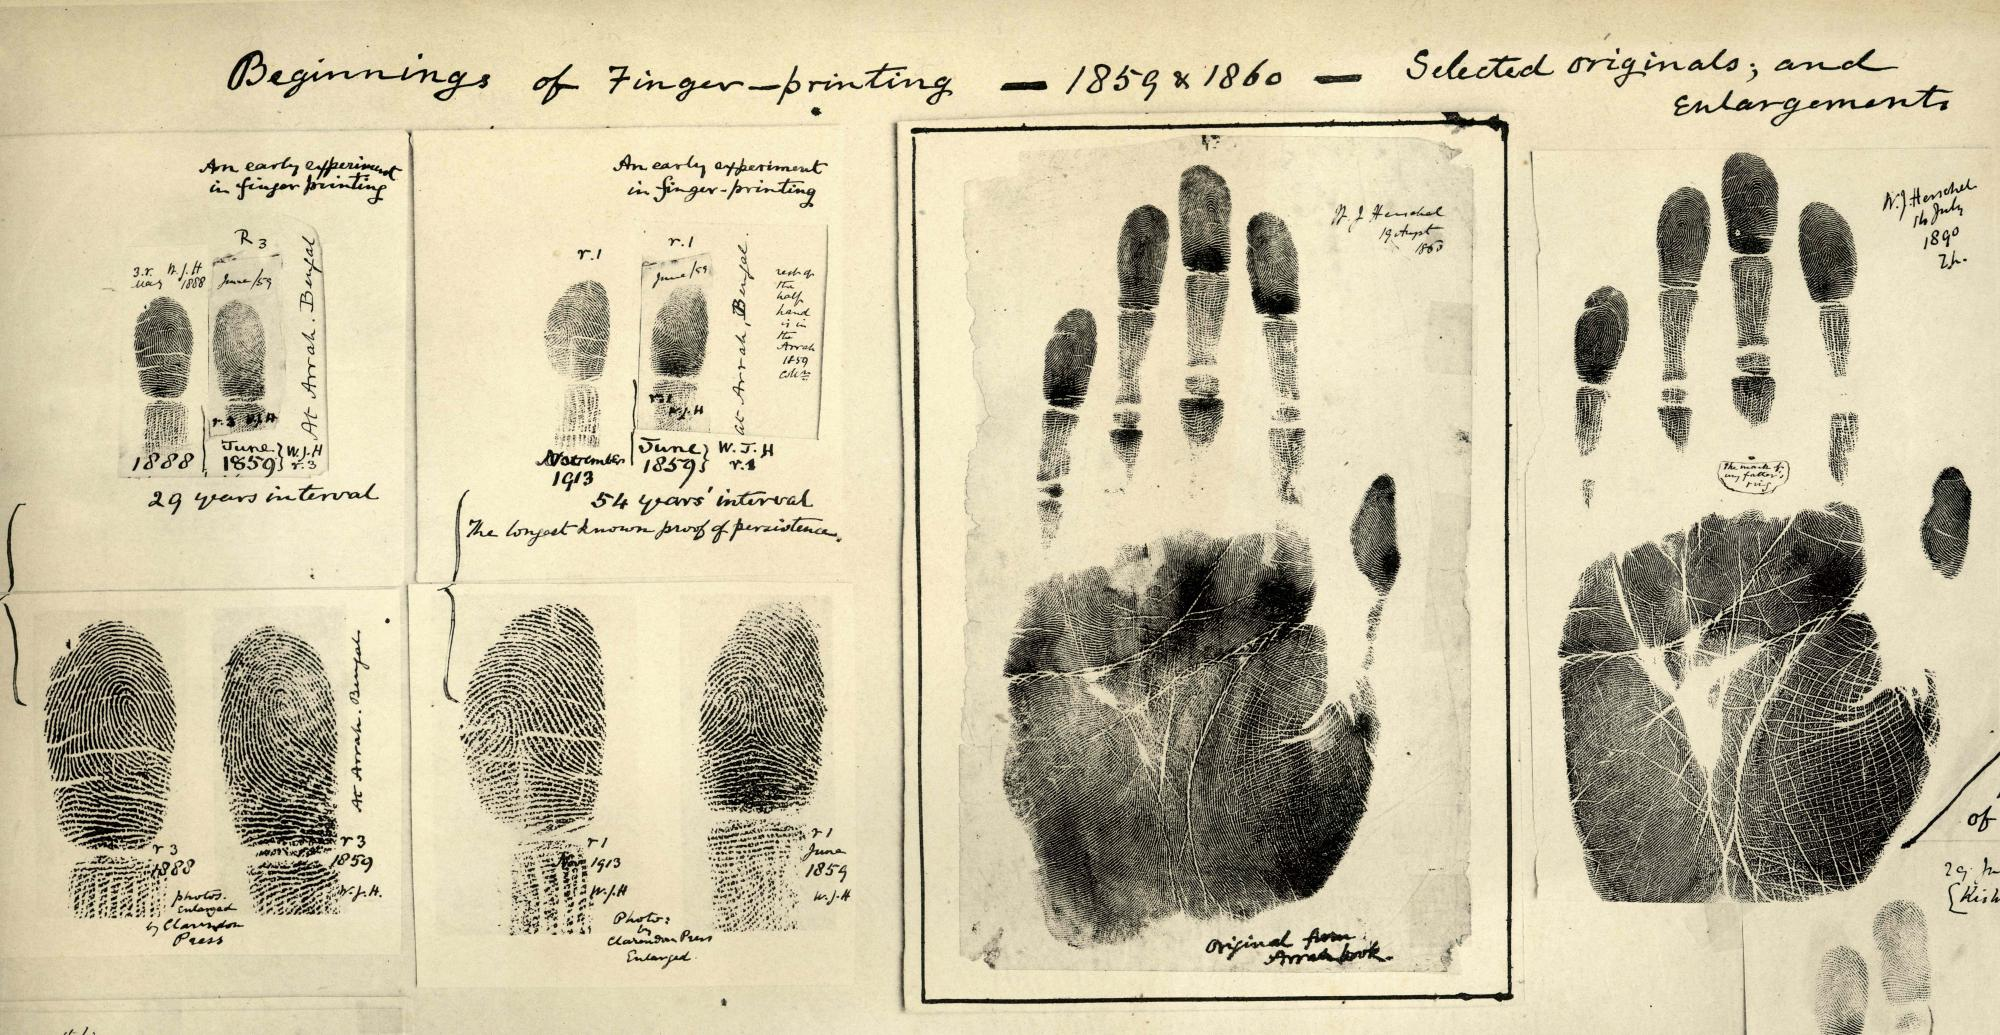 Fingerprints taken by William Herschel 1859/60